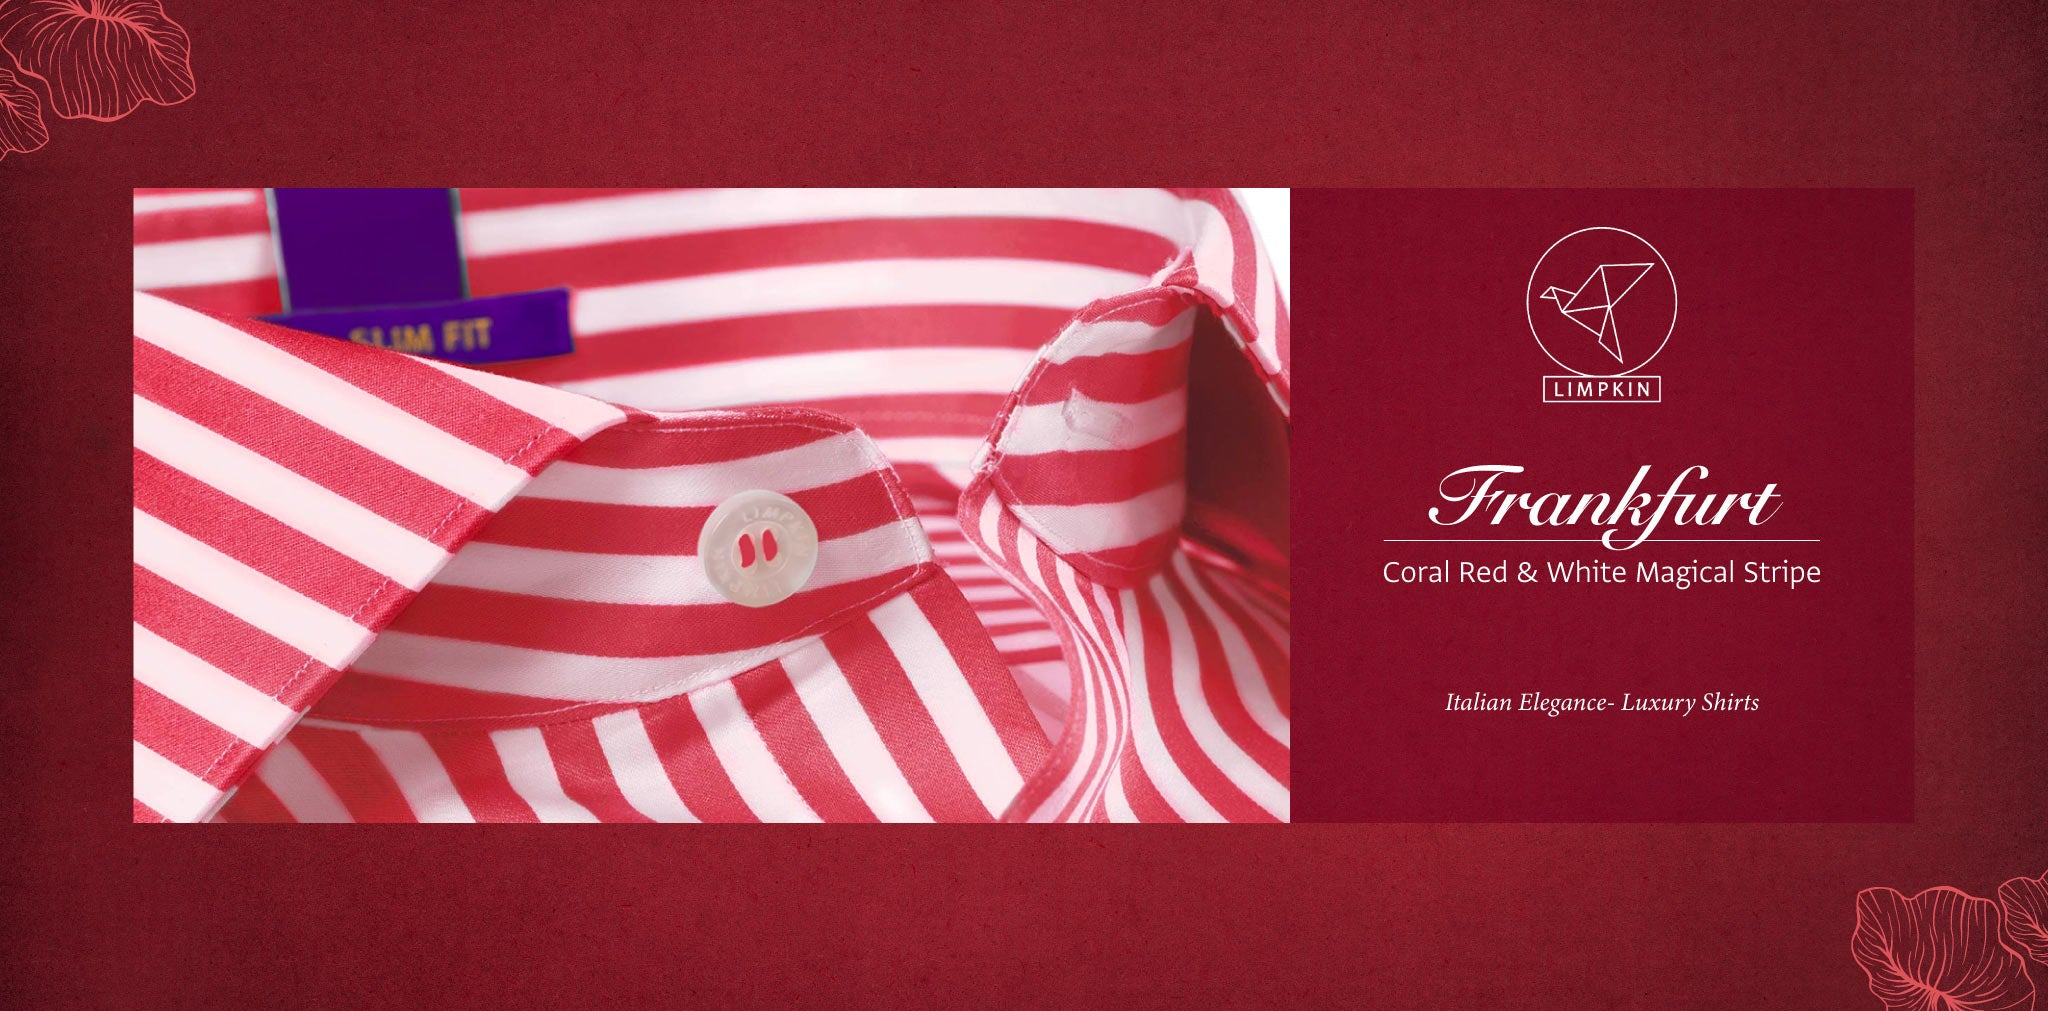 Frankfurt- Coral Red & White Magical Stripe- 2 Ply Pure Egyptian Giza Cotton- Delivery from 26th Sept - Banner